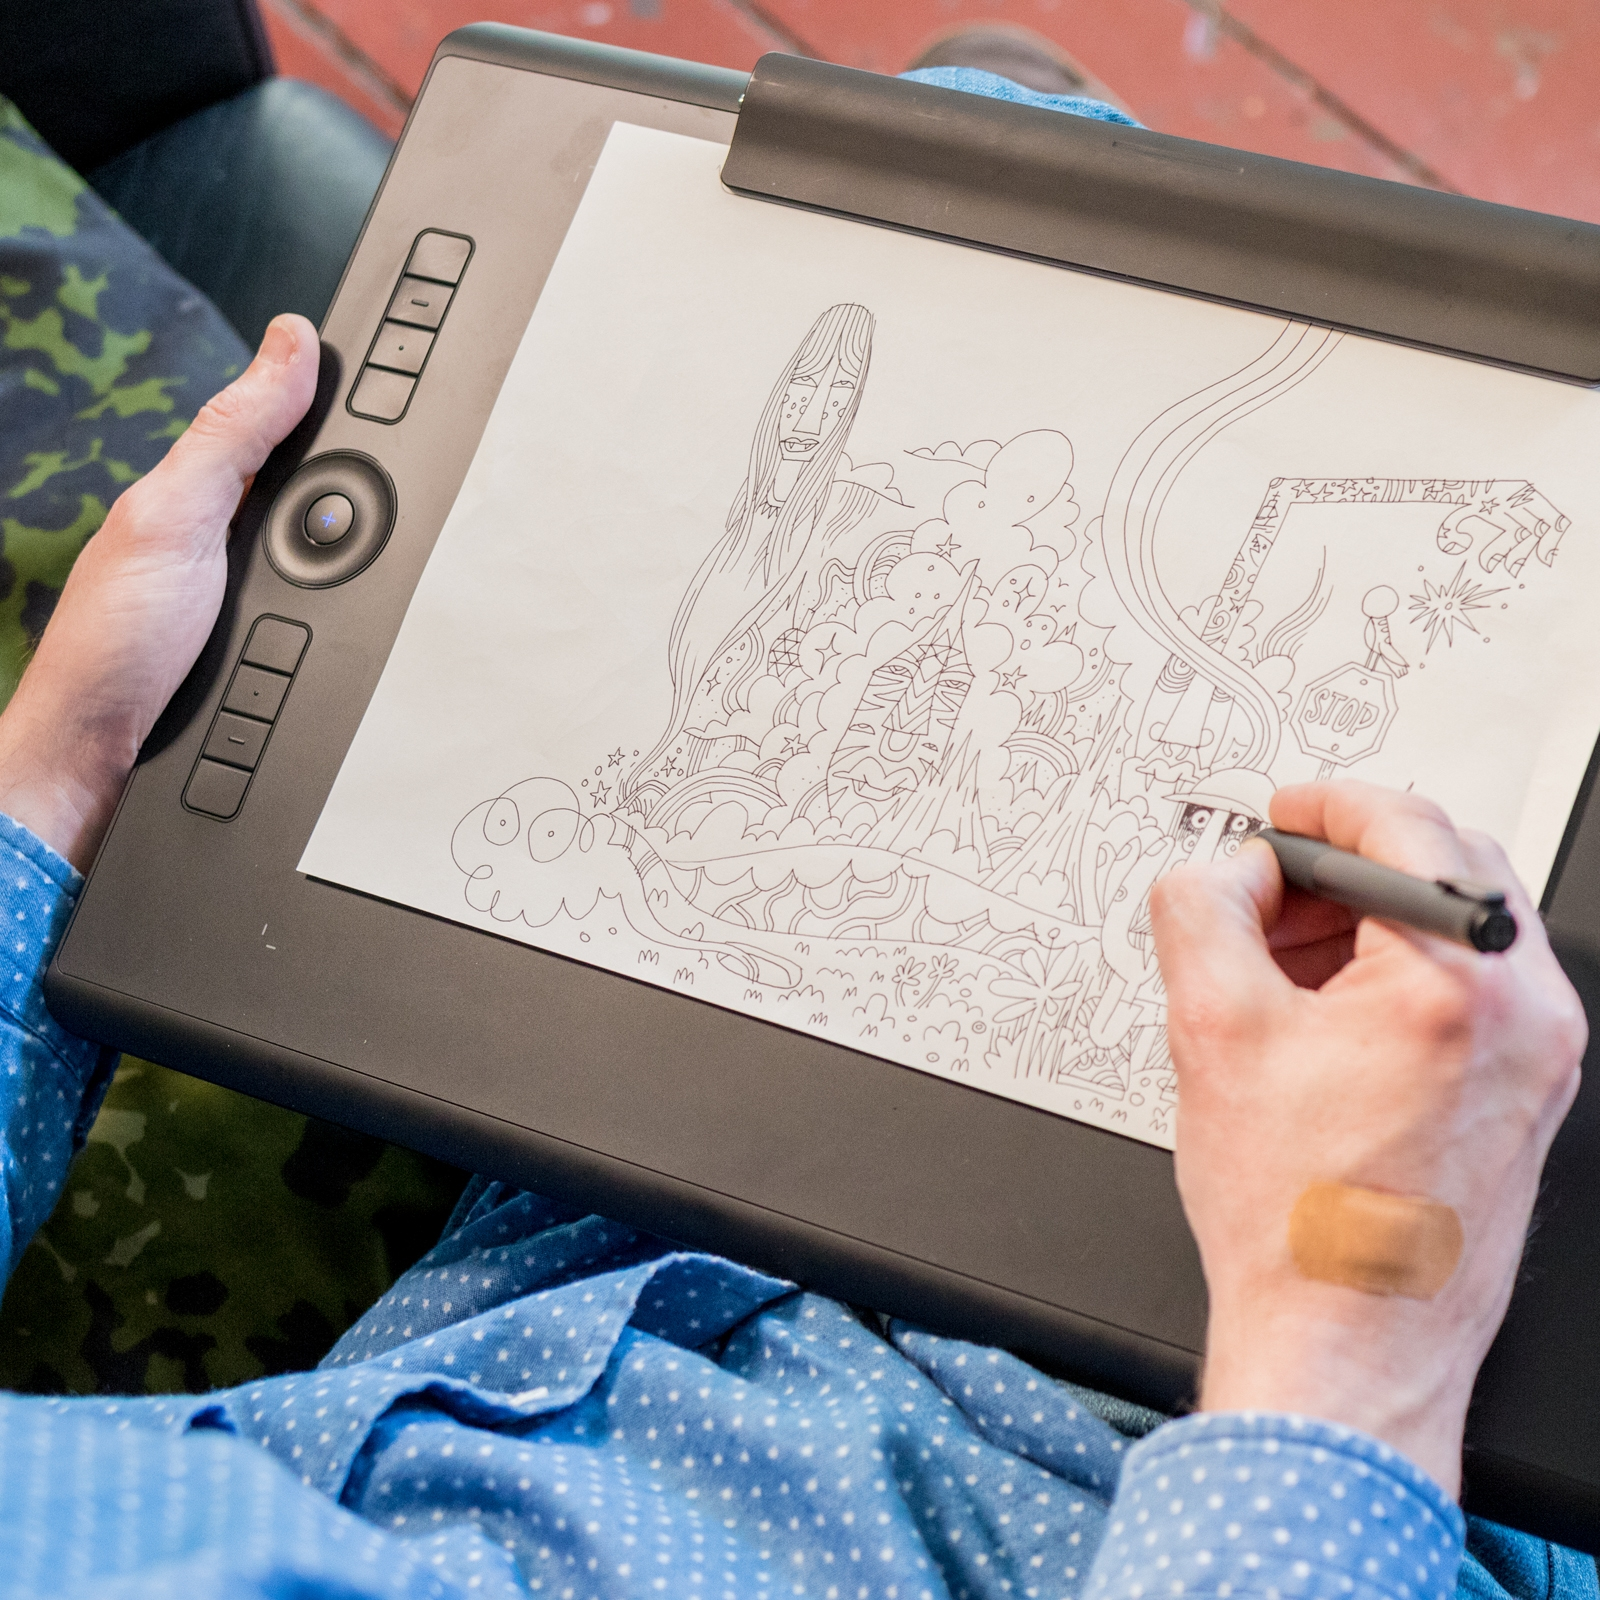 Draw on paper and screen at the same time, with the new